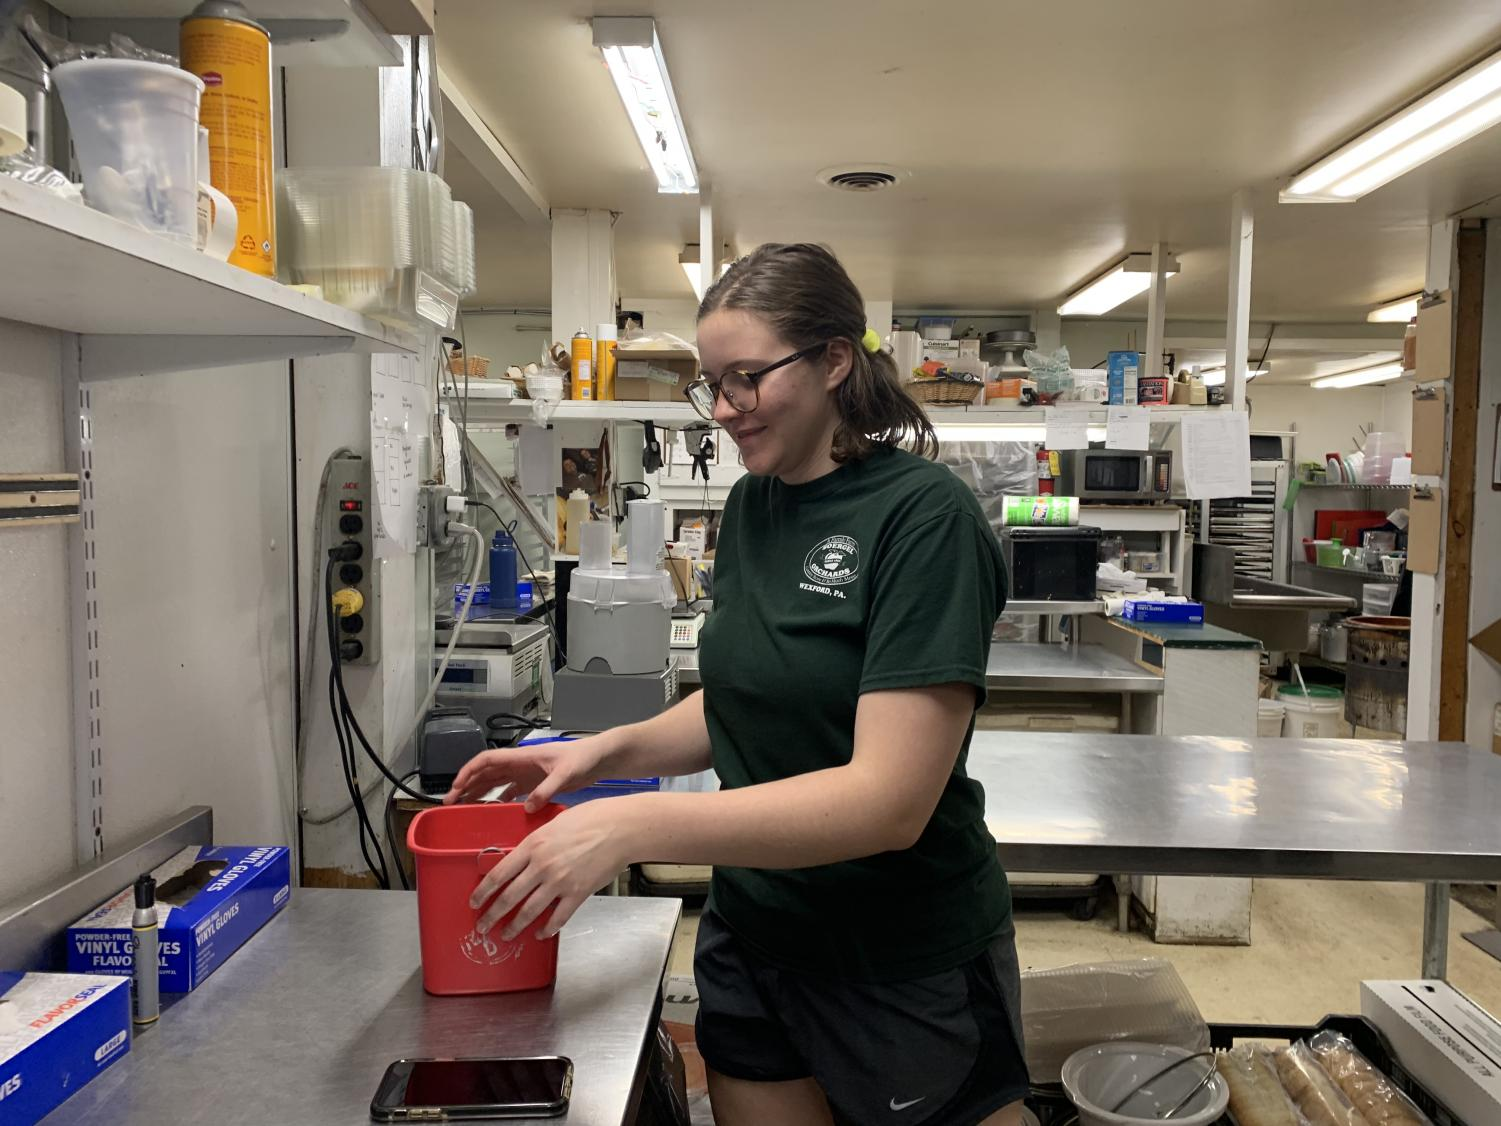 Scout Miller cleans the deli counter at Soergel's.  Like many students at NASH, Miller's part-time job is not always easy to manage alongside school work.